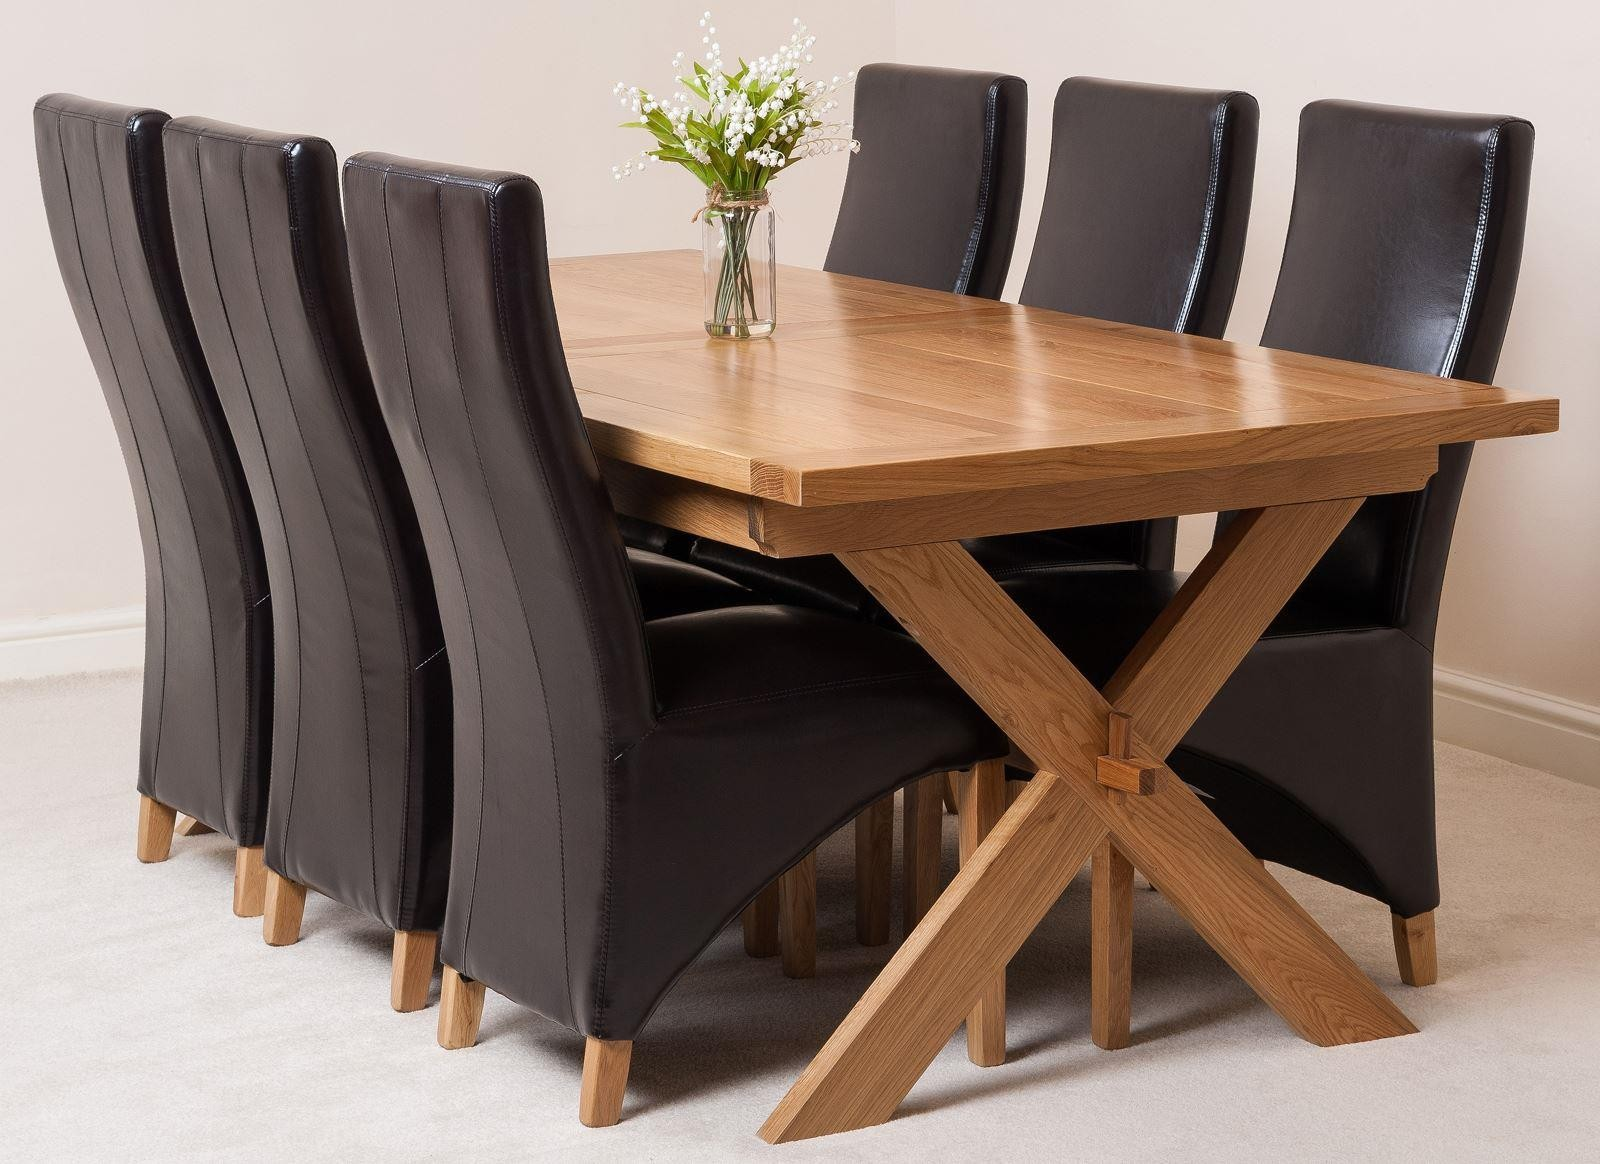 vermont solid oak 200cm 240cm crossed leg extending dining table with 6 lola dining chairs brown leather - Solid Oak Extending Dining Table And 6 Chairs